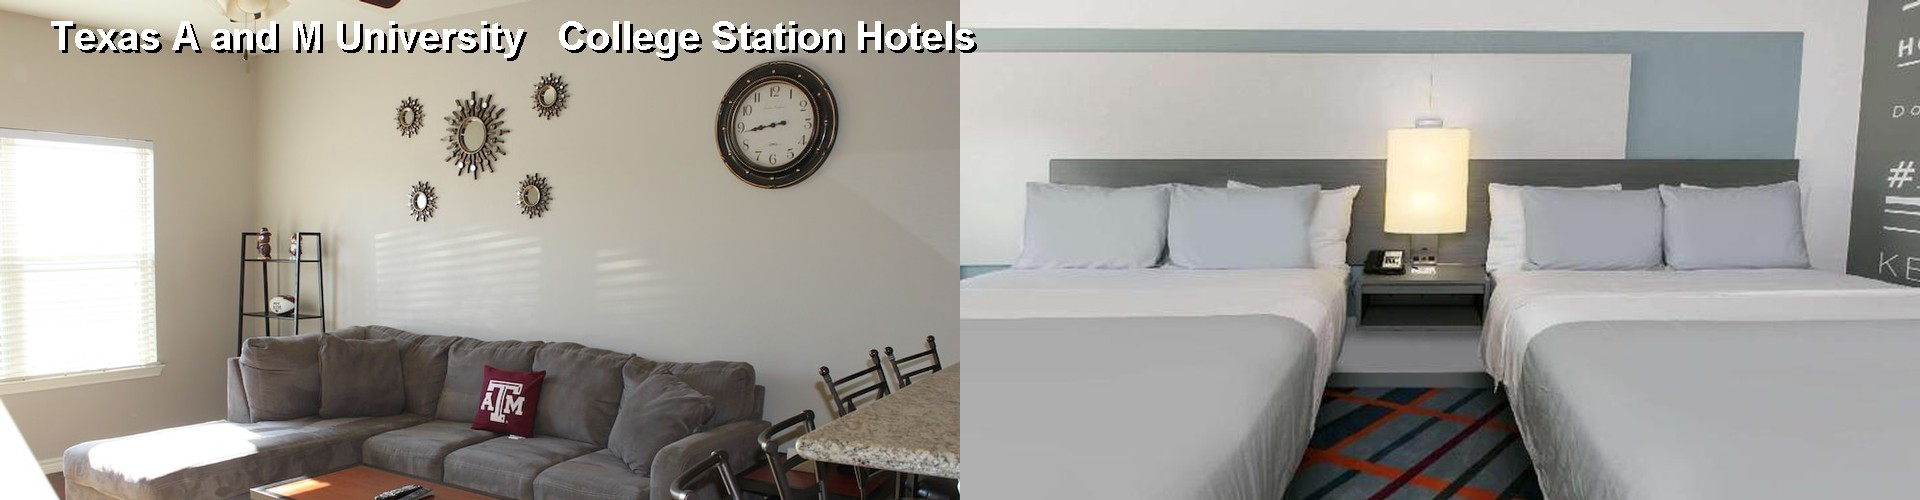 5 Best Hotels near Texas A and M University College Station